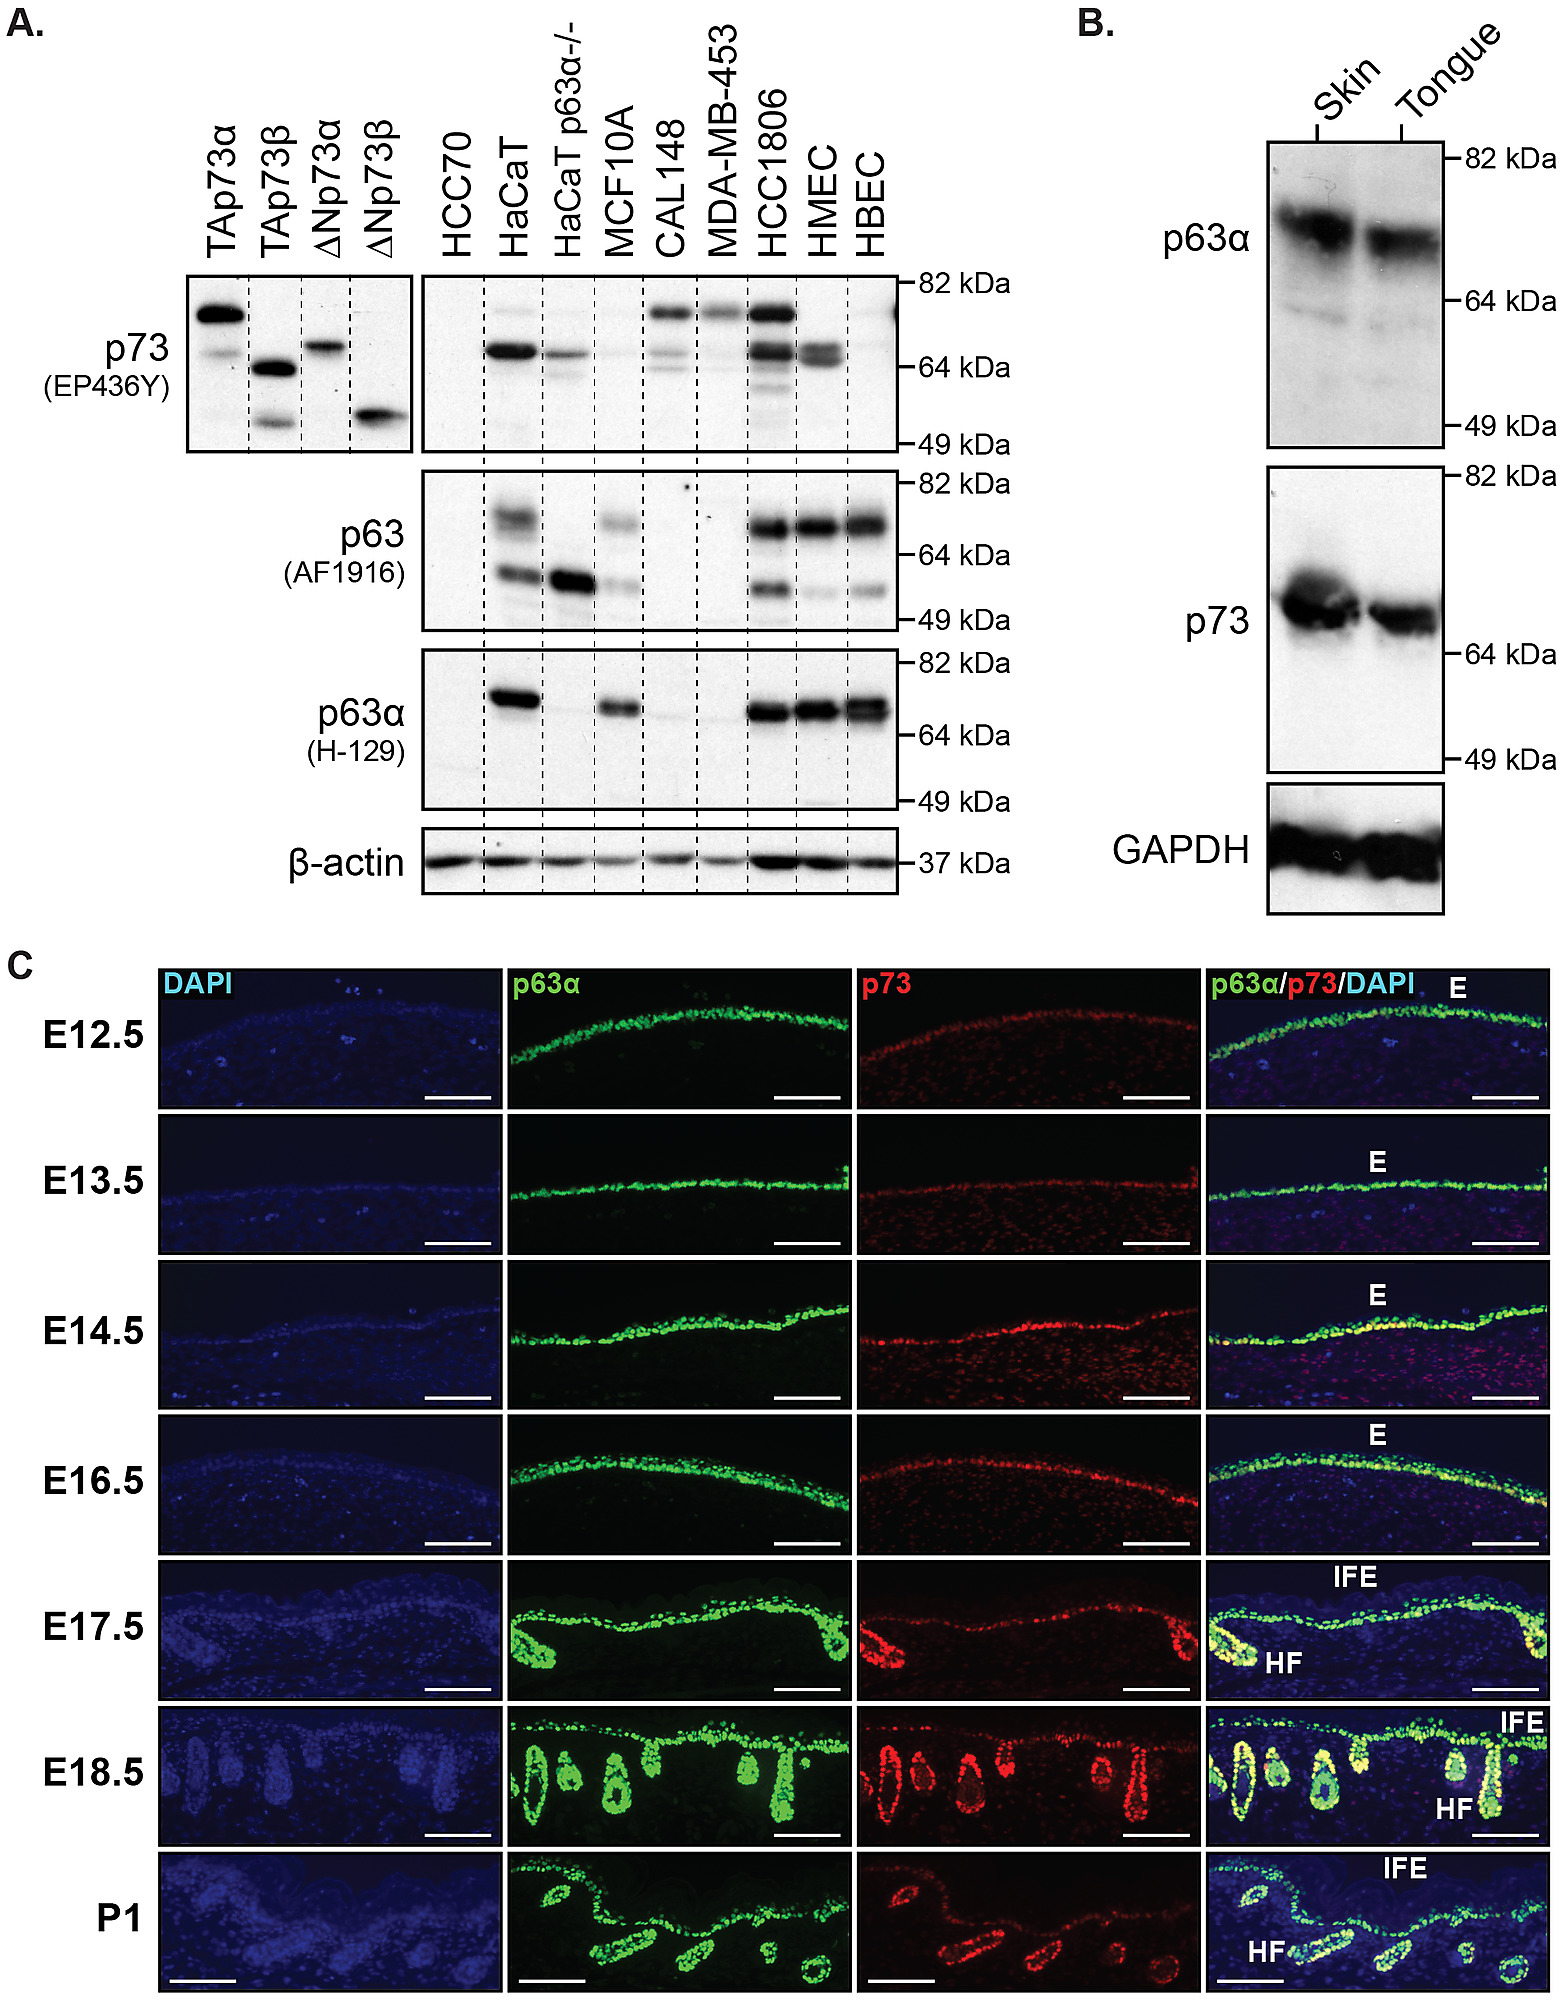 p73 regulates epidermal wound healing and induced